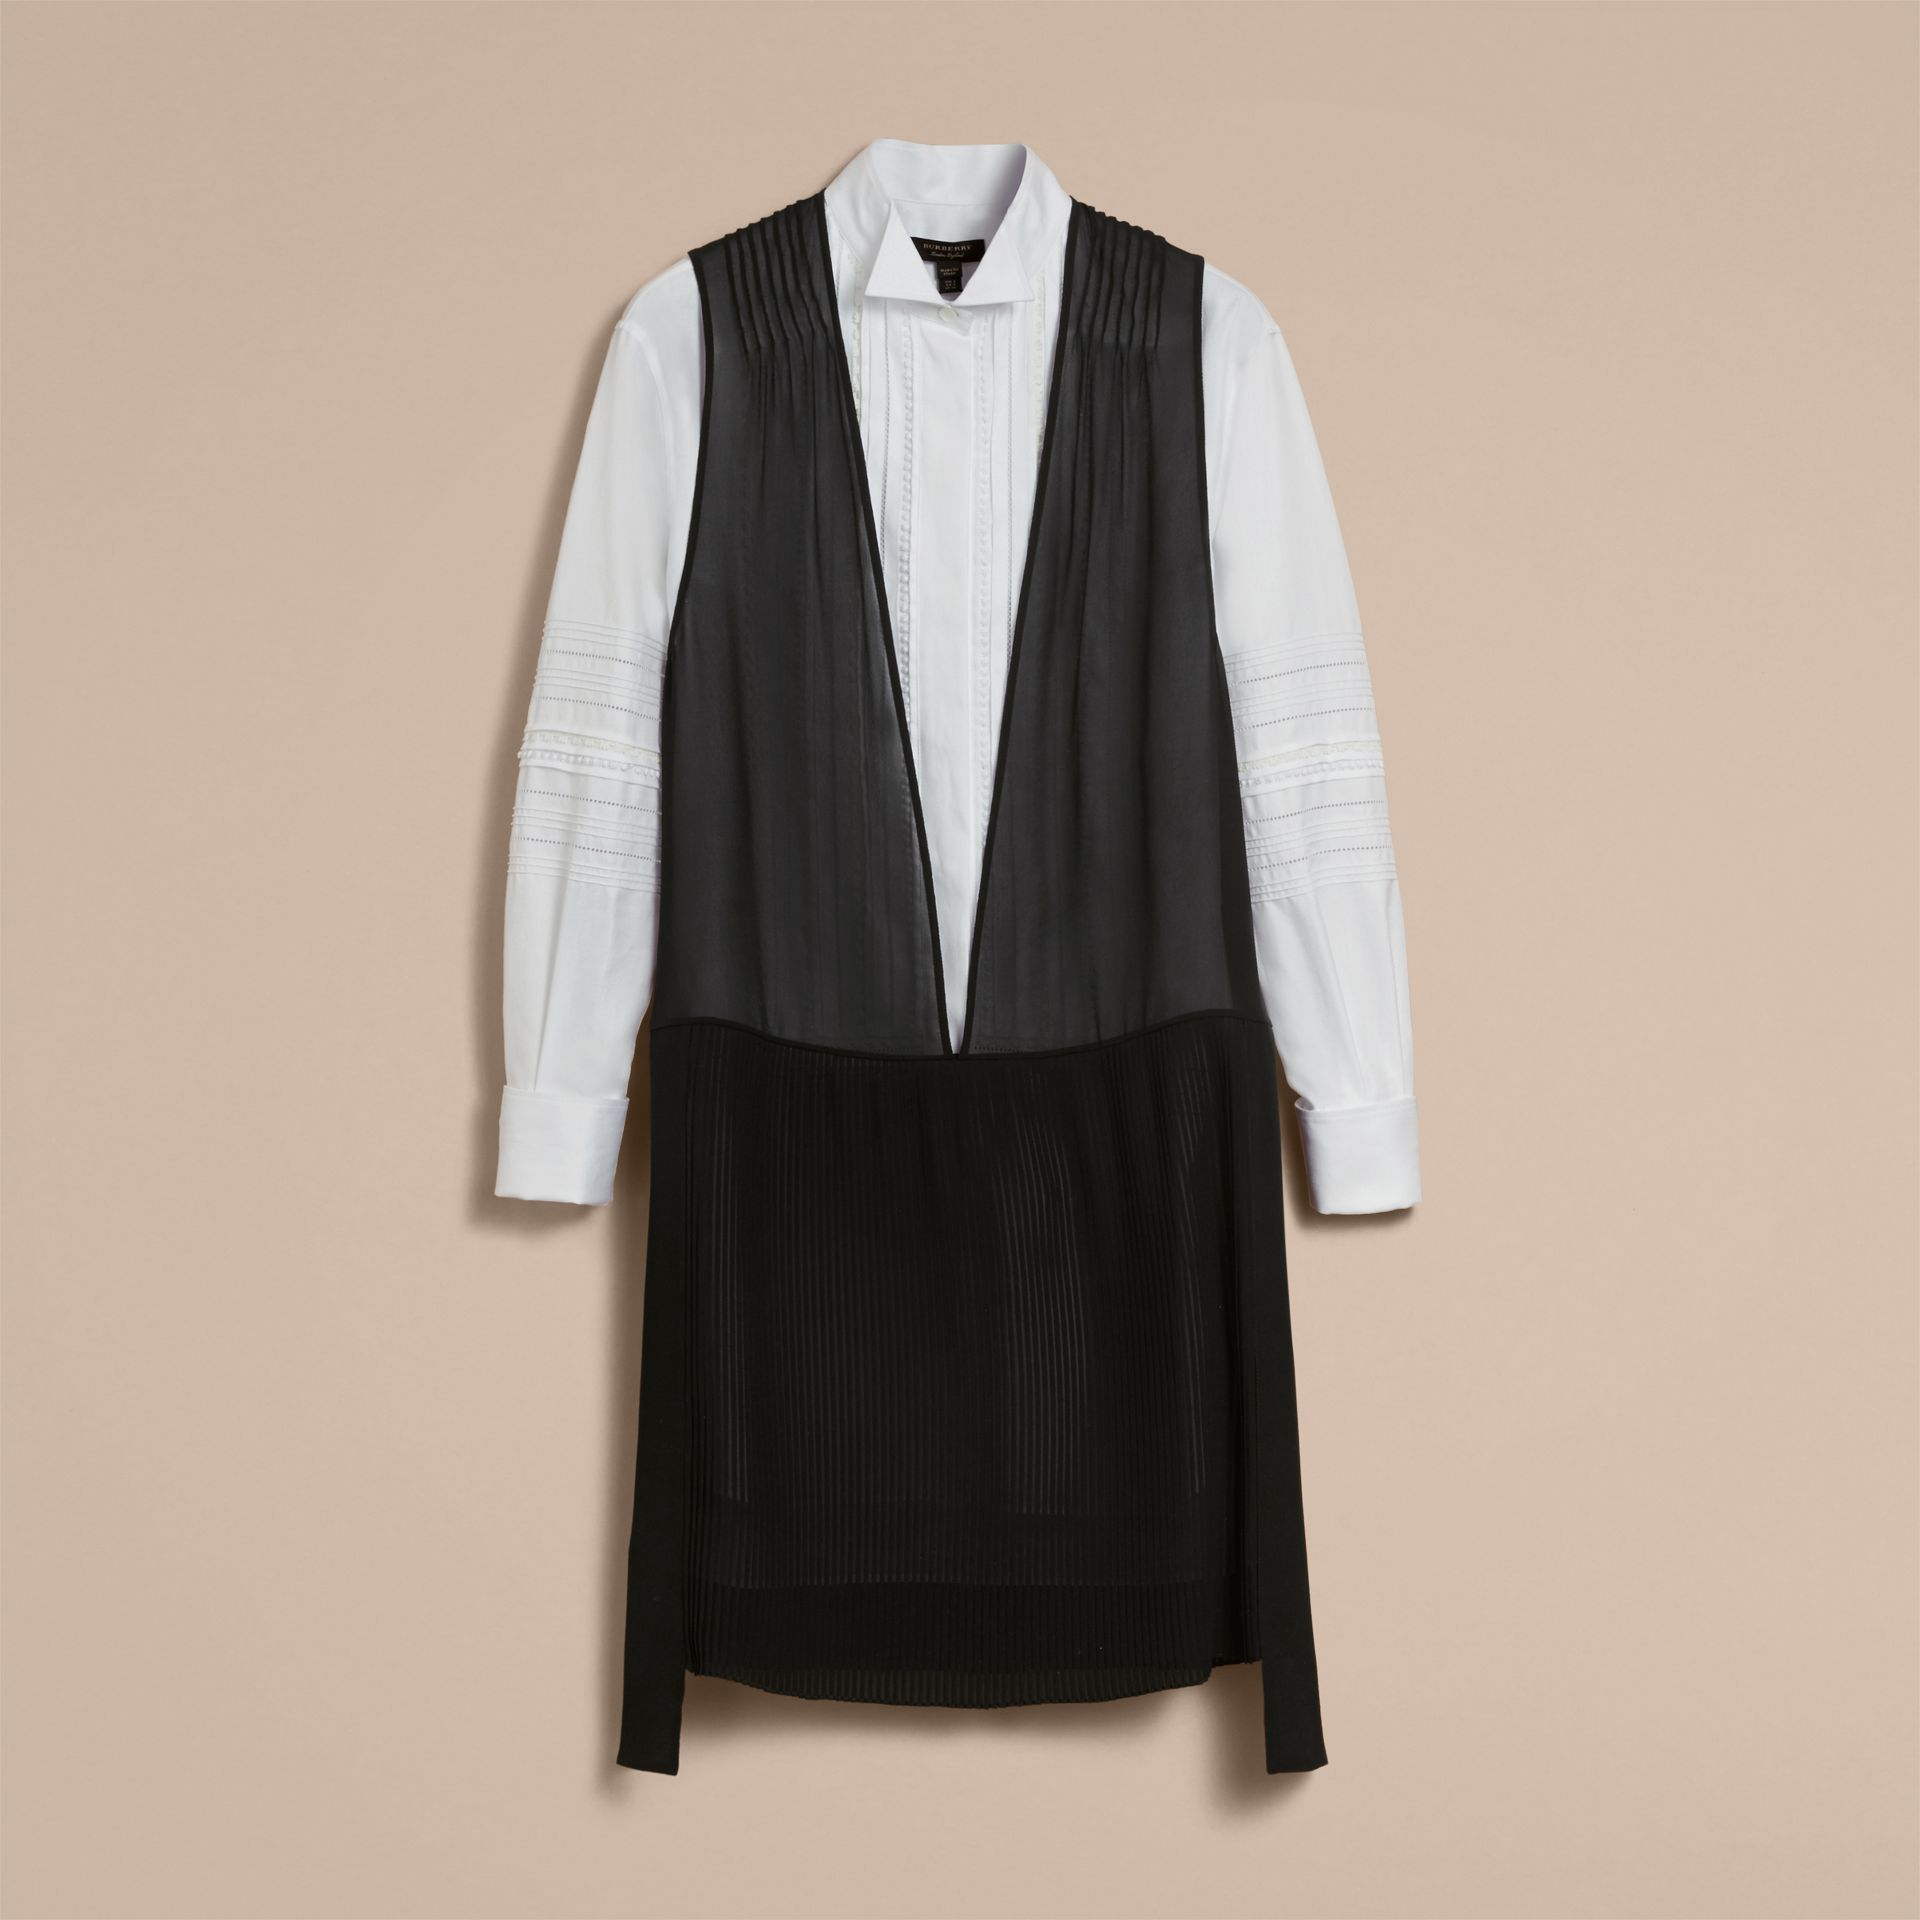 Silk and Cotton Dropped-waist Shirt Dress - Women | Burberry Australia - gallery image 4